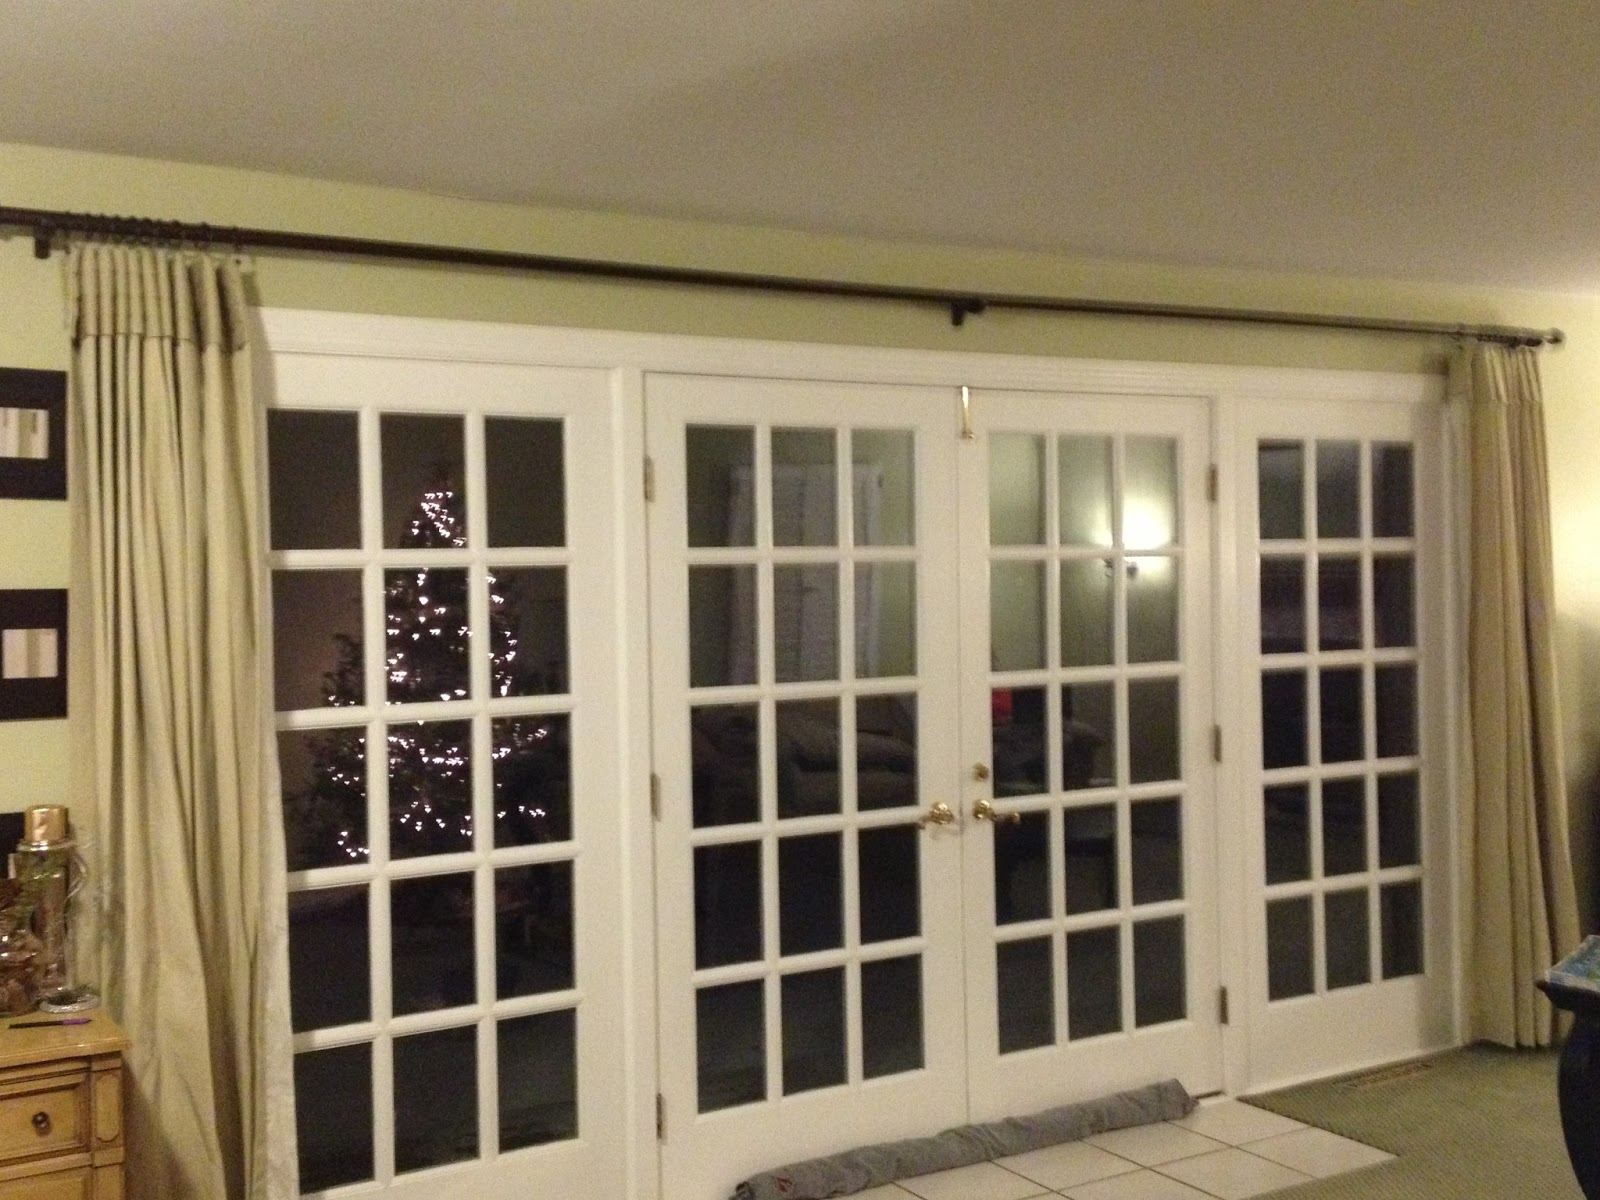 Maintaining The Dream: Installing Custom Length Curtain Rods